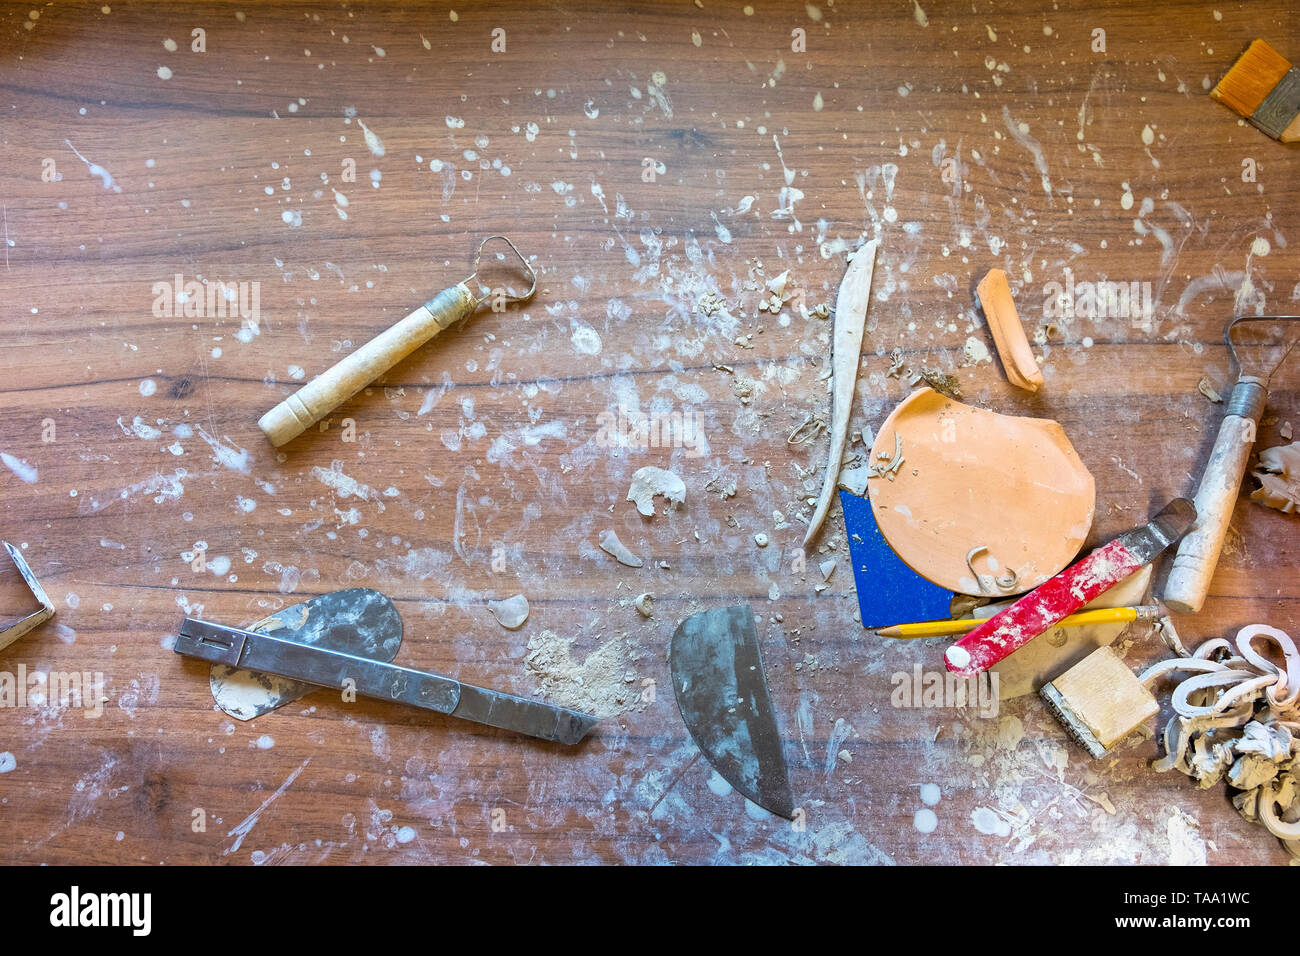 Creative mess on the wooden desk in pottery workshop - Stock Image